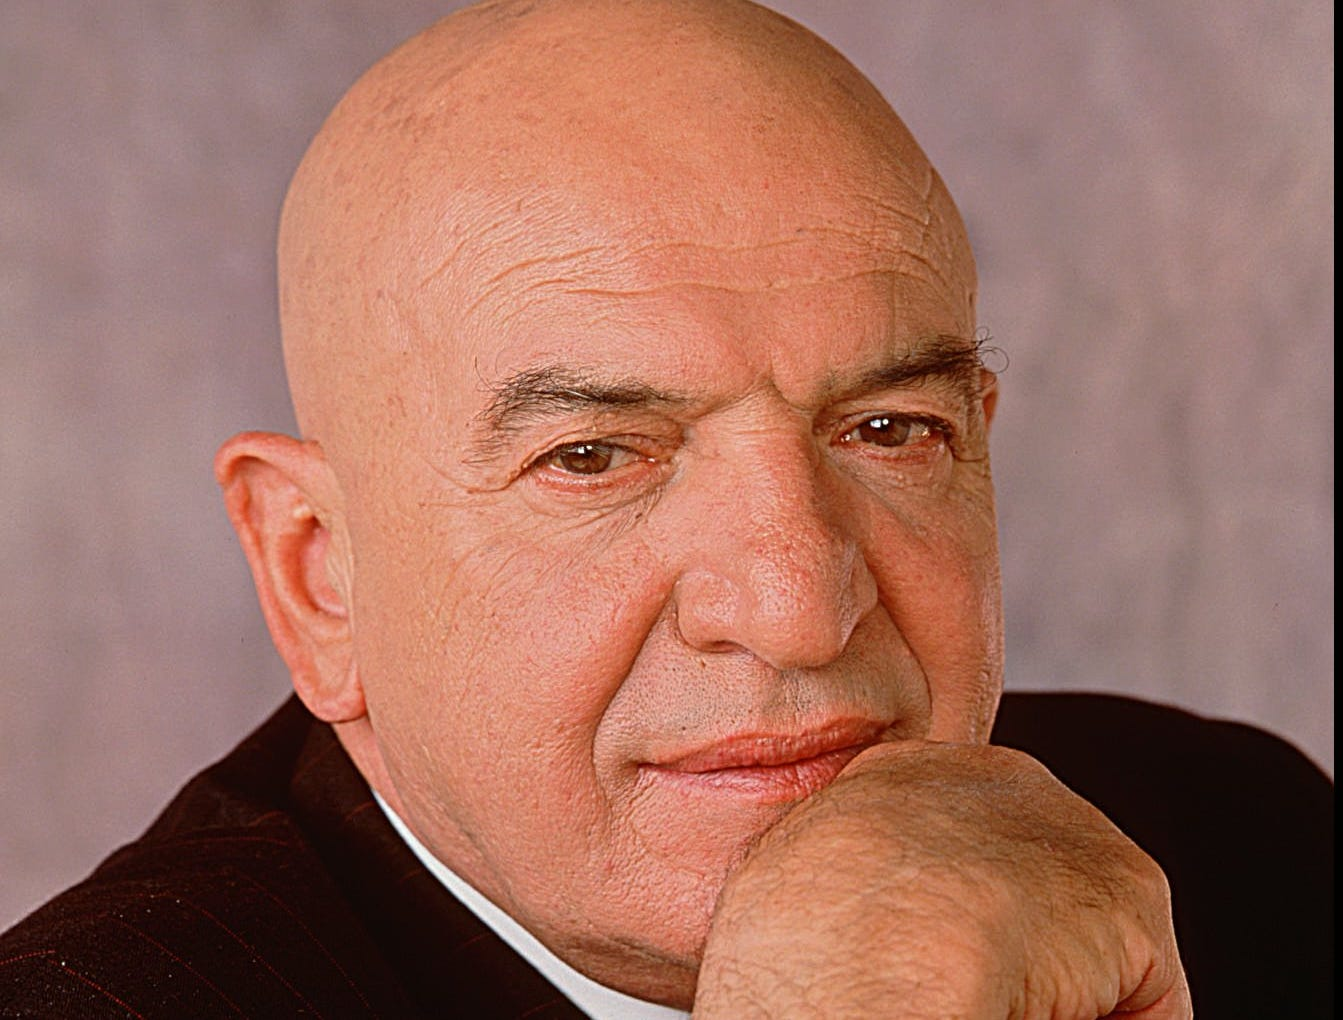 1989 ----FILE PHOTO---- Actor, Telly Savalas